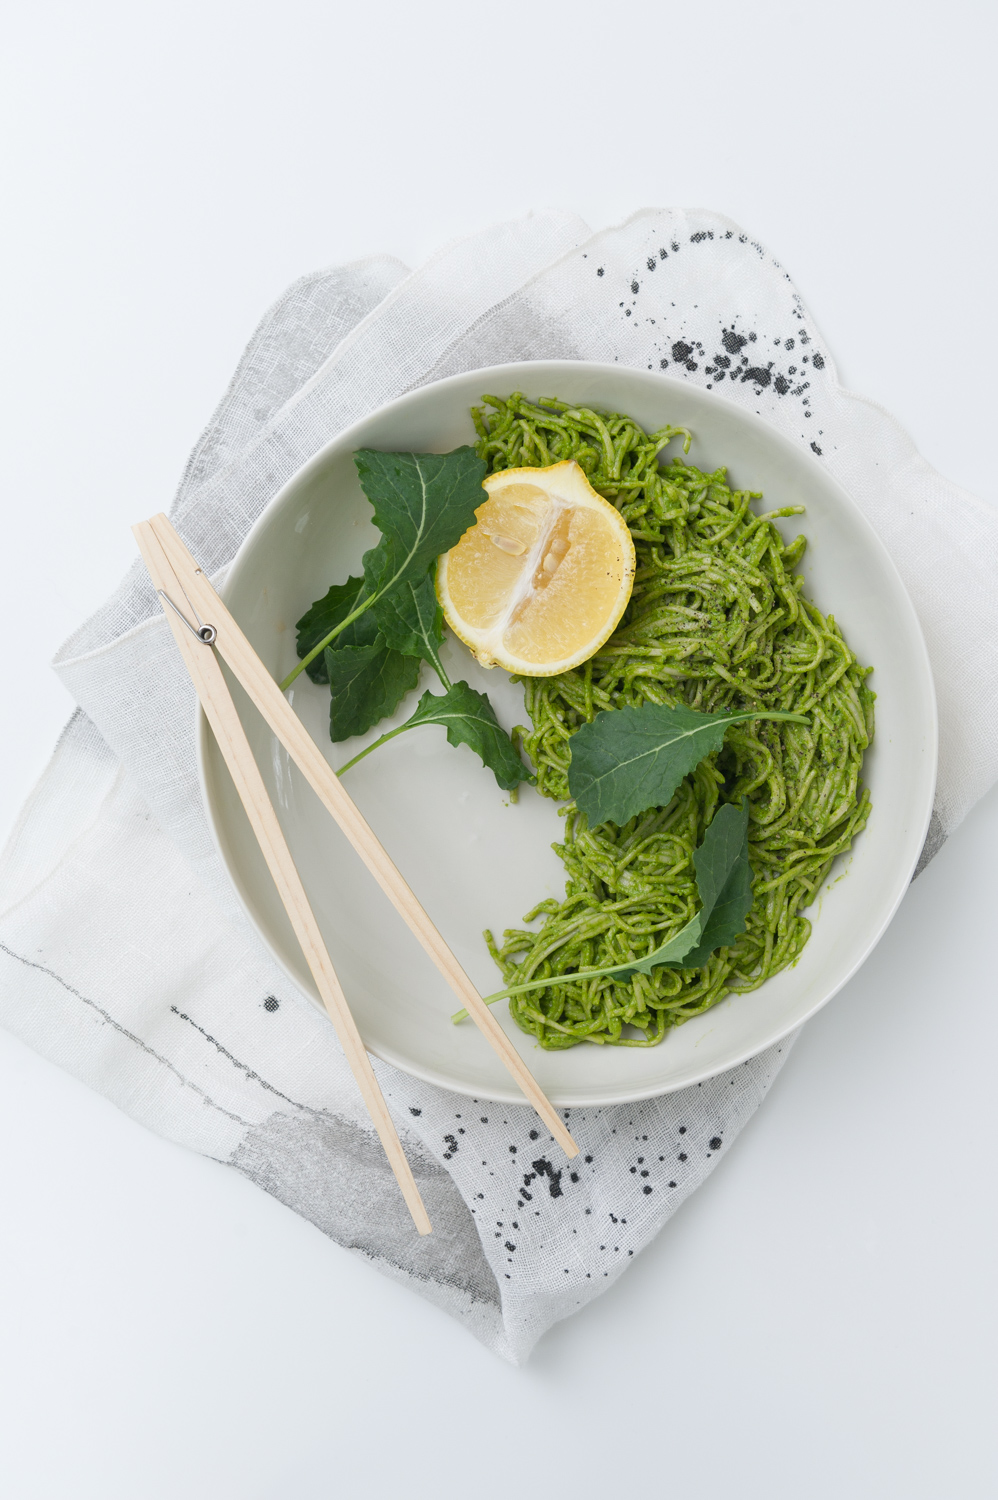 Soba Noodles with Lemony Kale & Hemp Seed Pesto. Gluten free. Vegan with a pescetarian option. Dairy free.